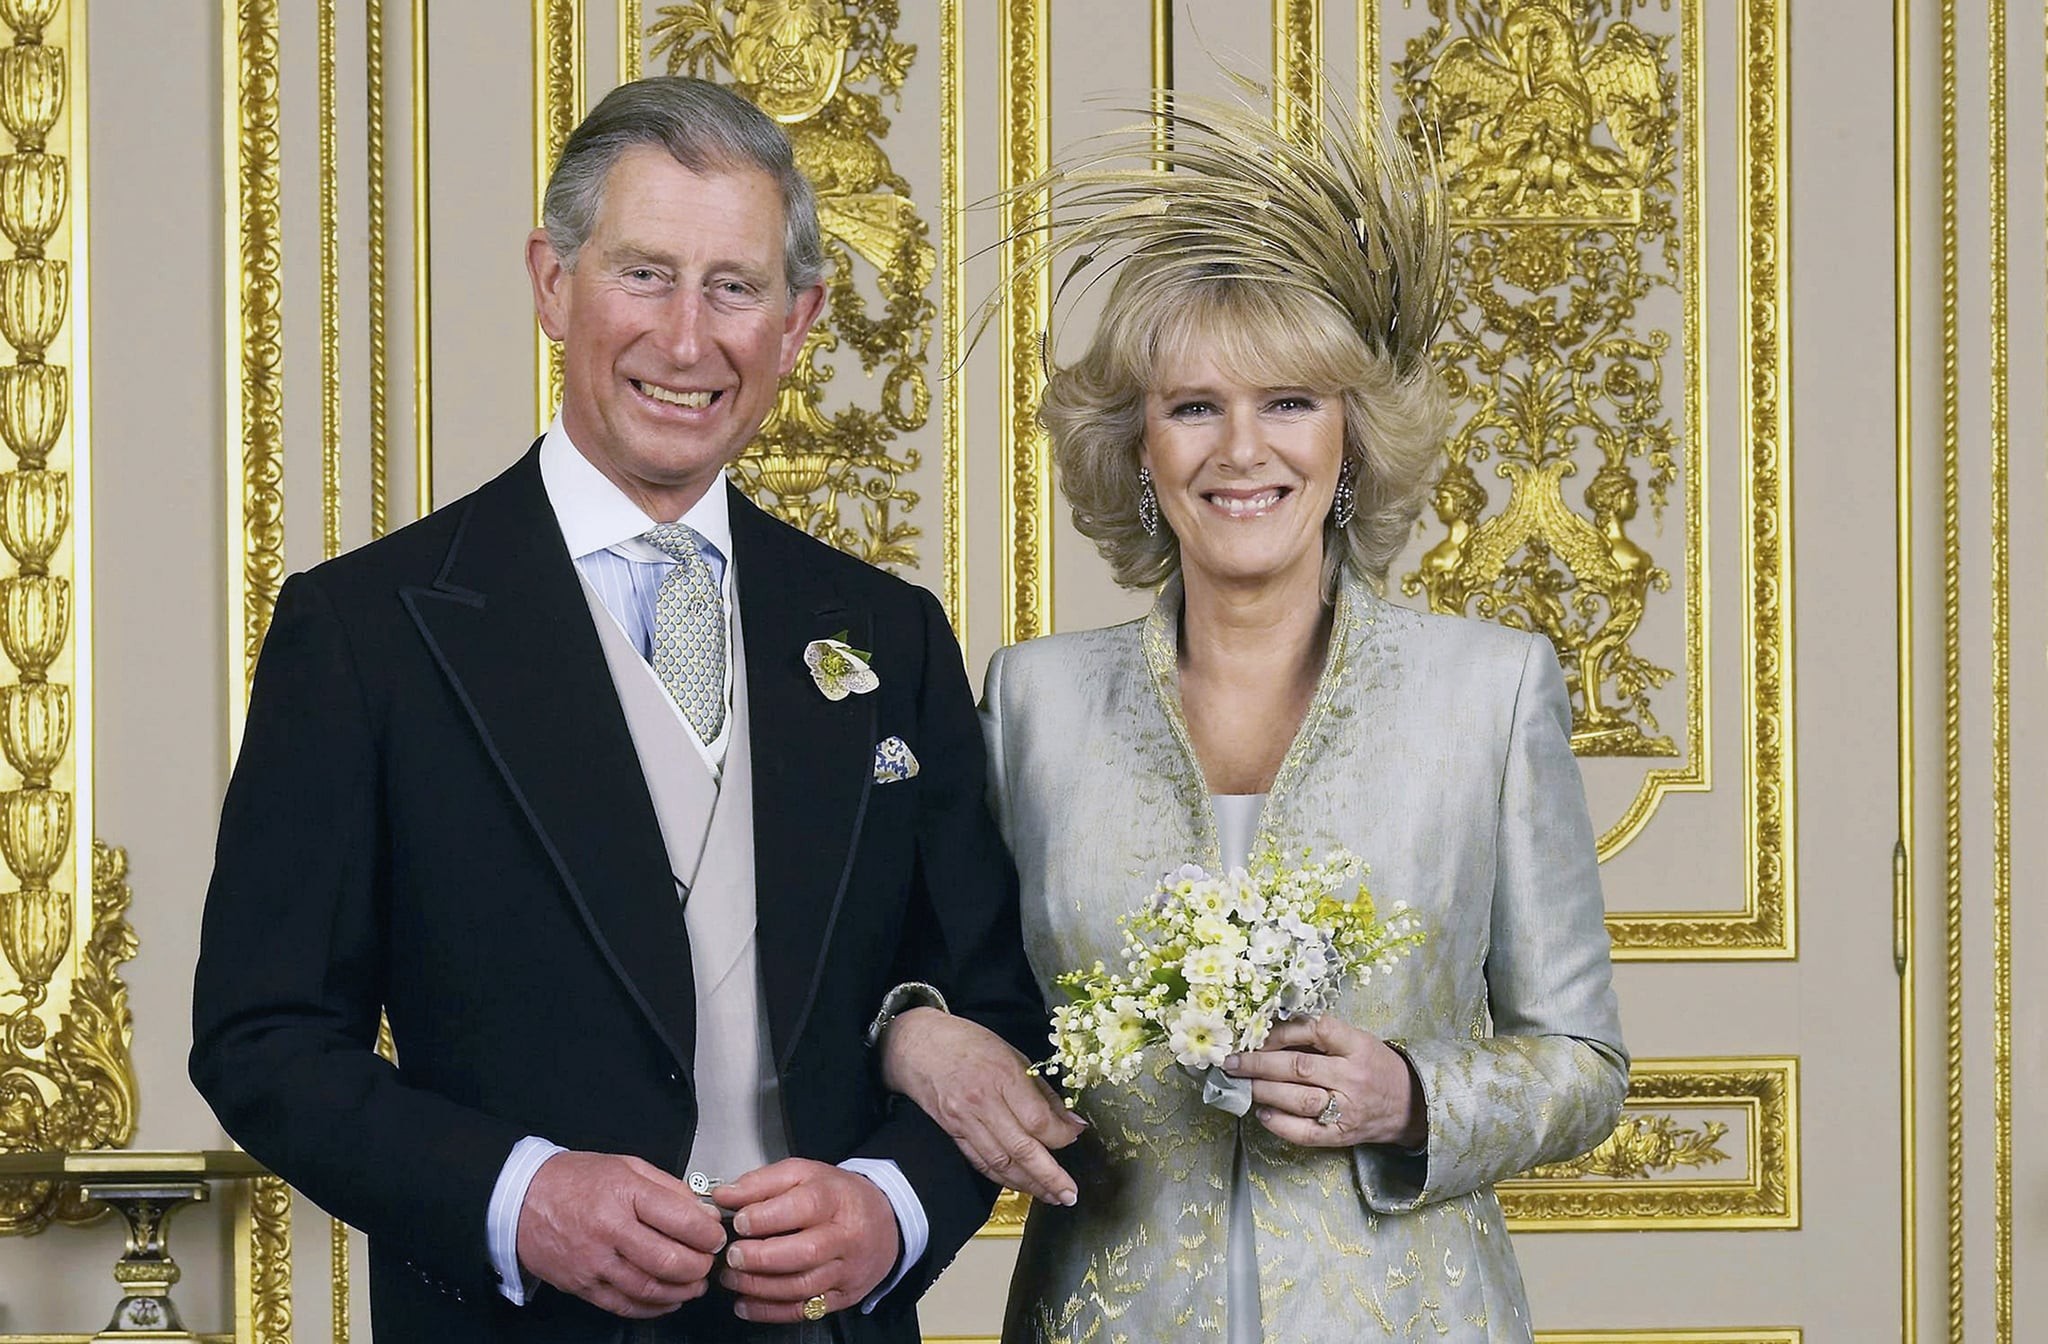 WINDSOR, ENGLAND - APRIL 9: Clarence House official handout photo of the Prince of Wales and his new bride Camilla, Duchess of Cornwall in the White Drawing Room at Windsor Castle after their wedding ceremony, April 9, 2005 in Windsor, England. (Photo by Hugo Burnand/Pool/Getty Images)